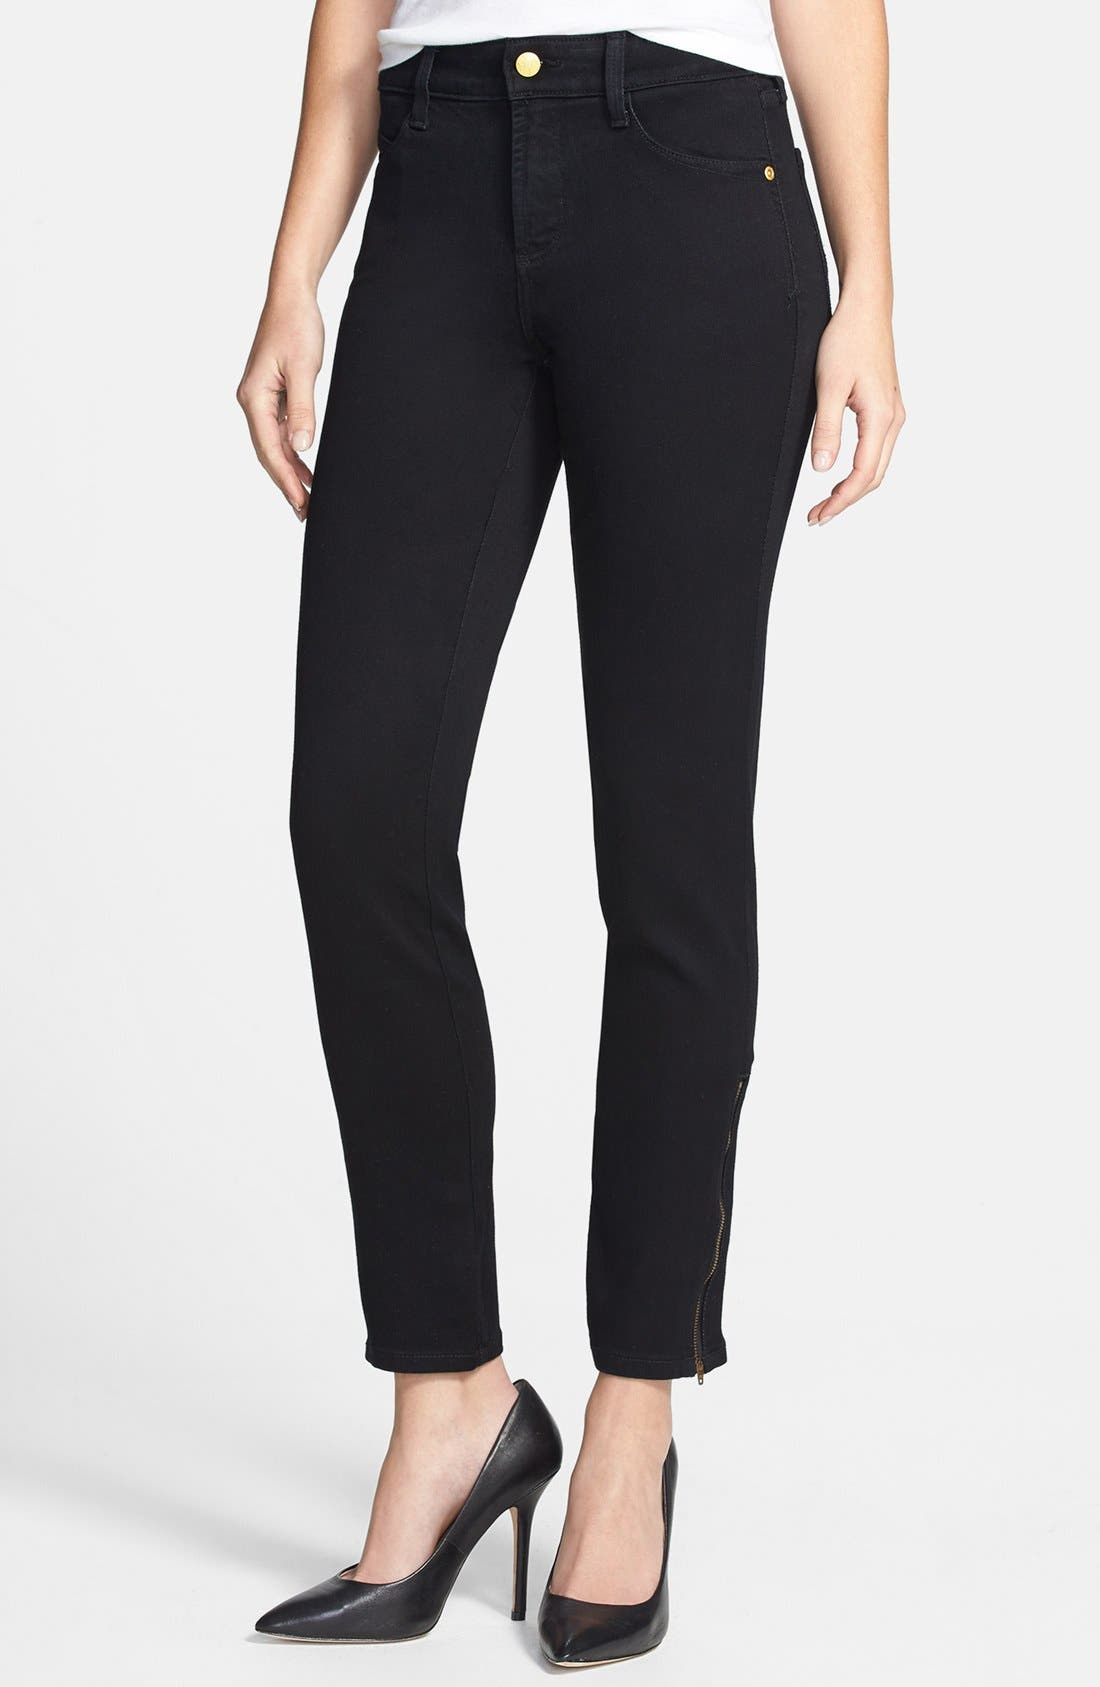 Alternate Image 1 Selected - NYDJ 'Josephine' Side Zip Stretch Ankle Jeans (Black)